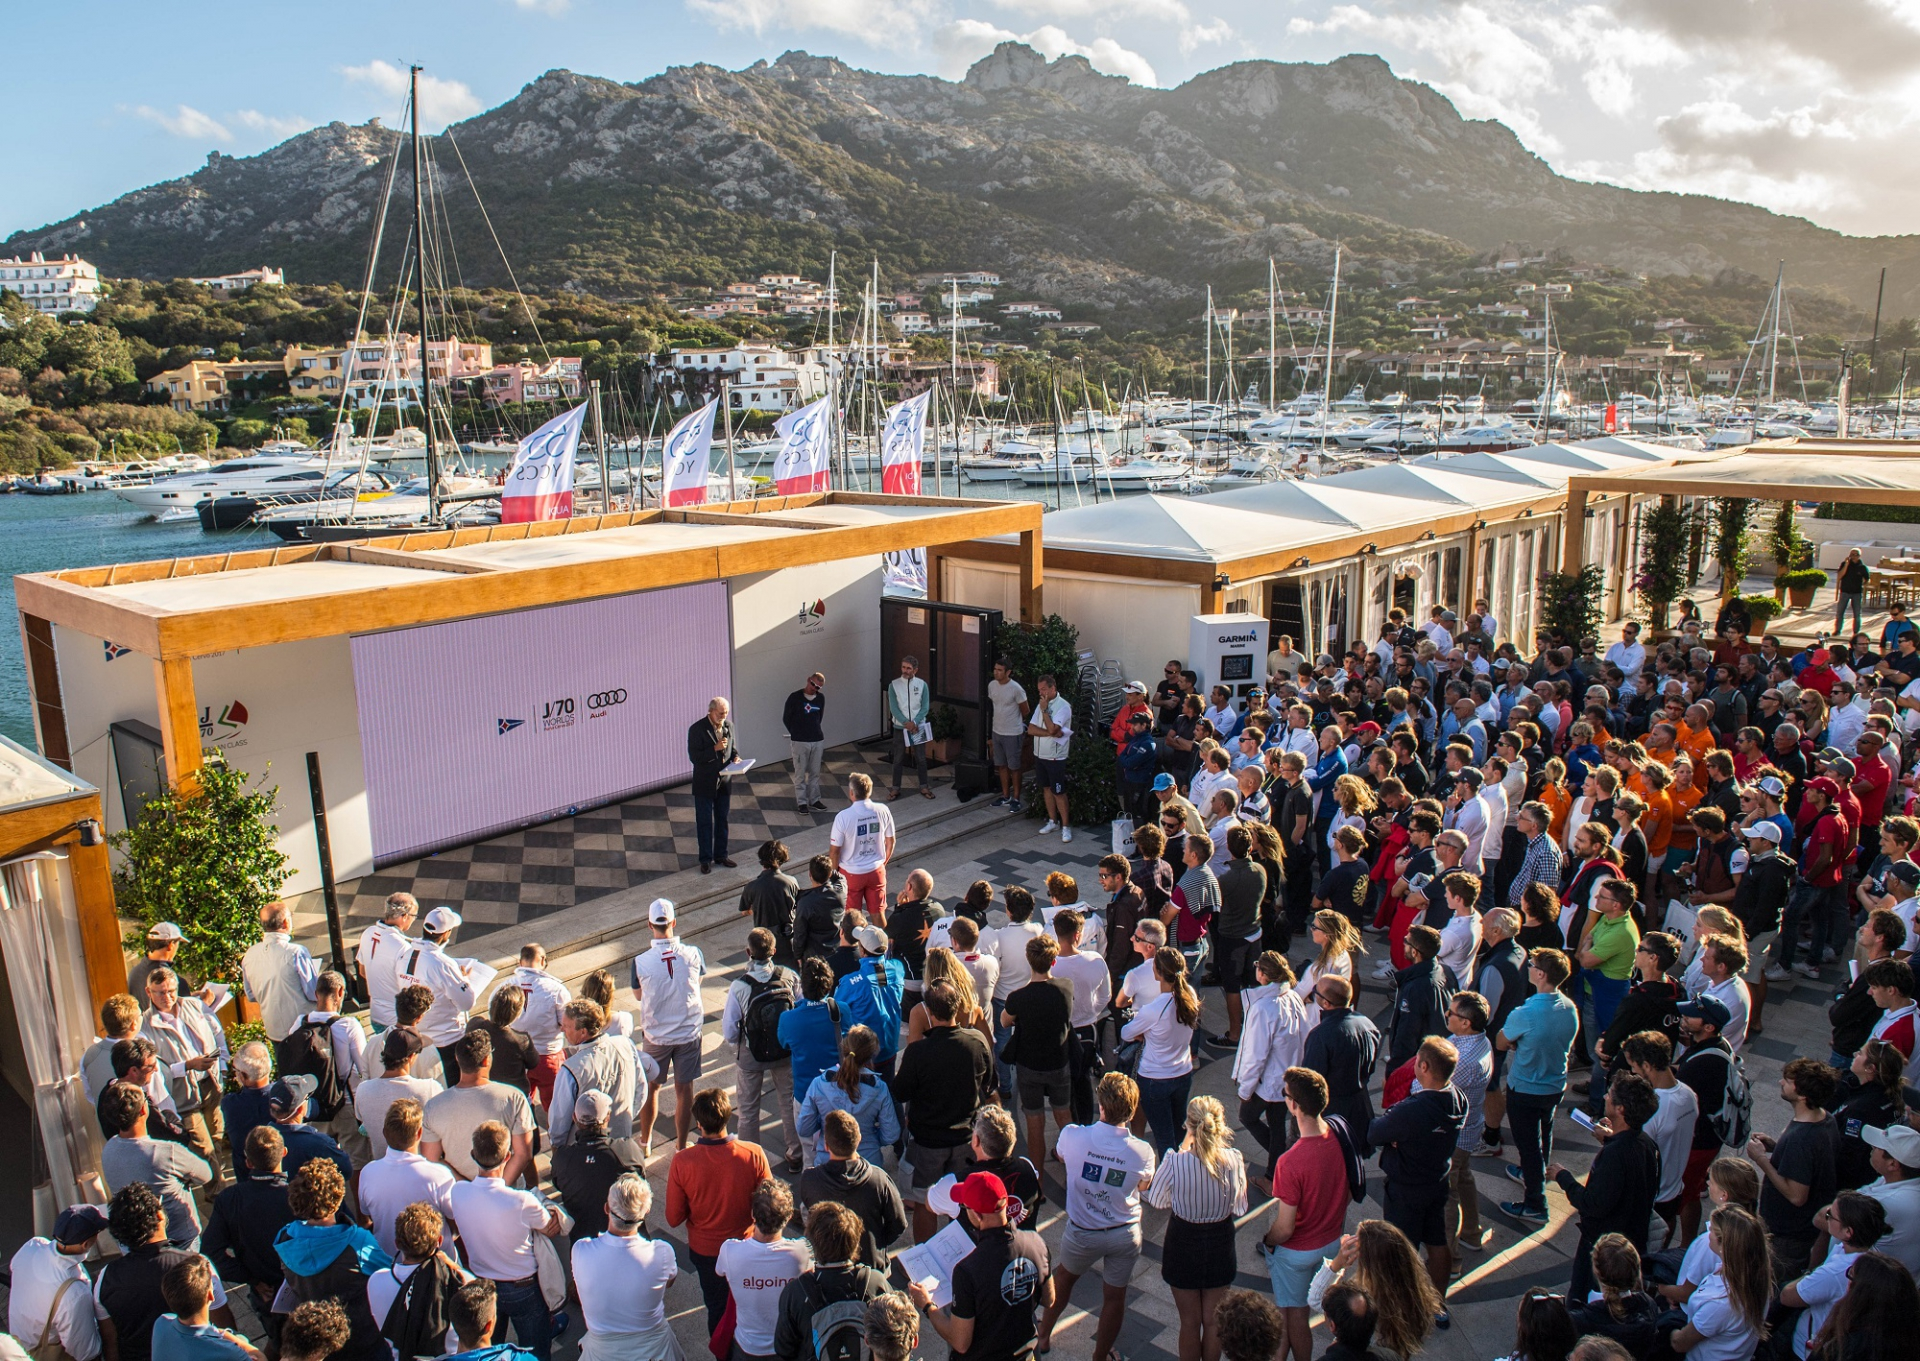 A record fleet of 171 teams is ready for the Audi J/70 World Championship - NEWS - Yacht Club Costa Smeralda